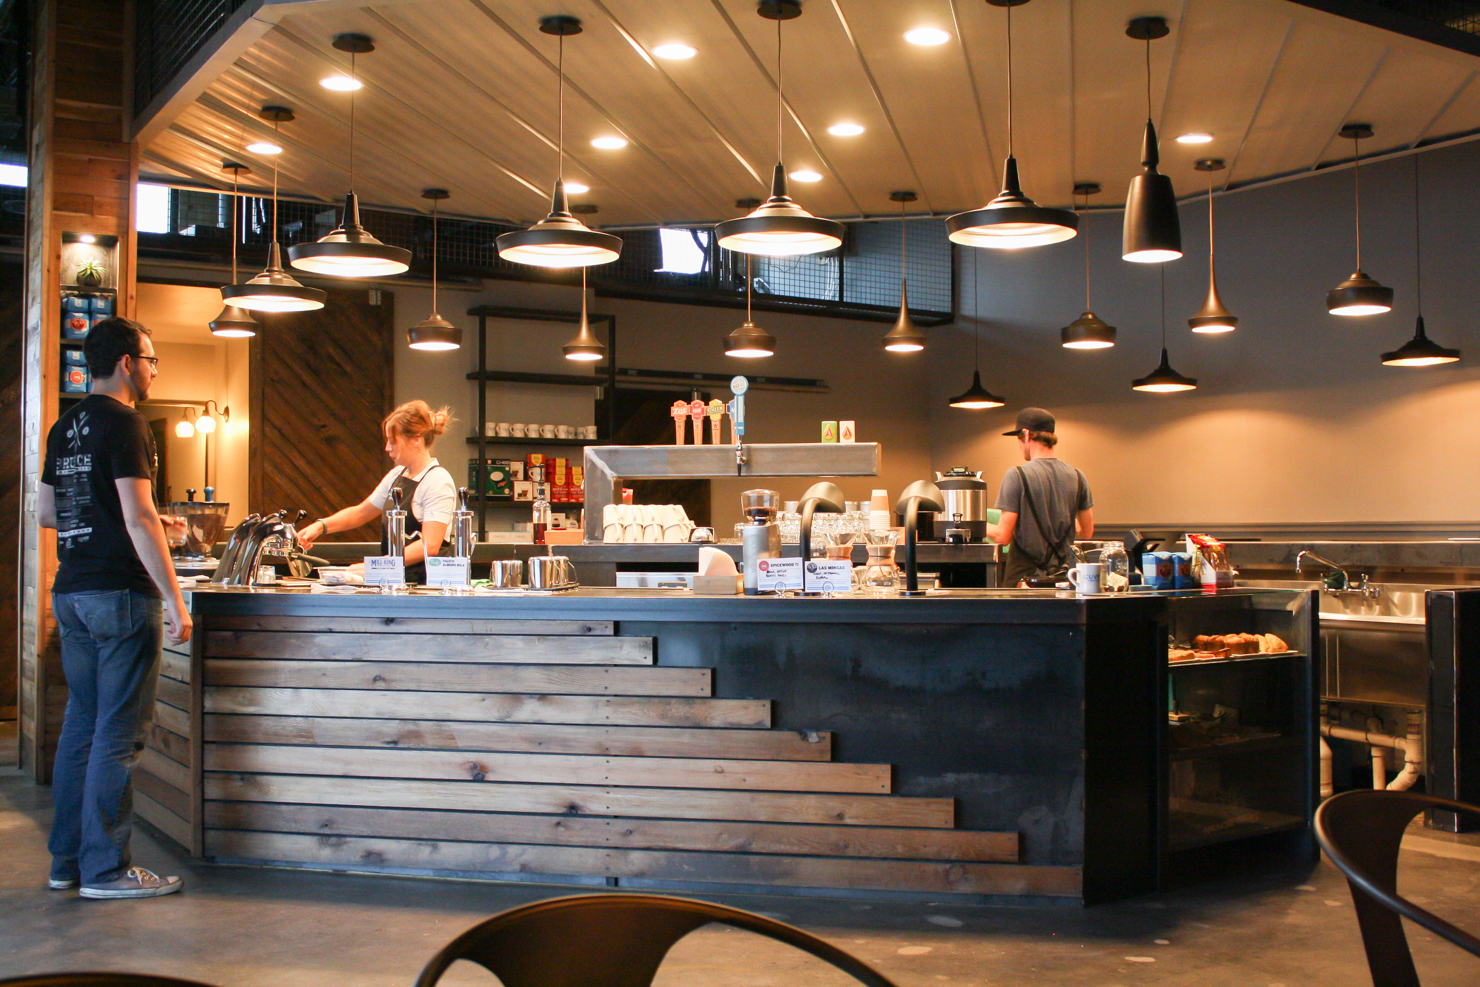 cafe themed kitchen decor cabinets nashville tn go inside cuvee coffee's state of the art austin